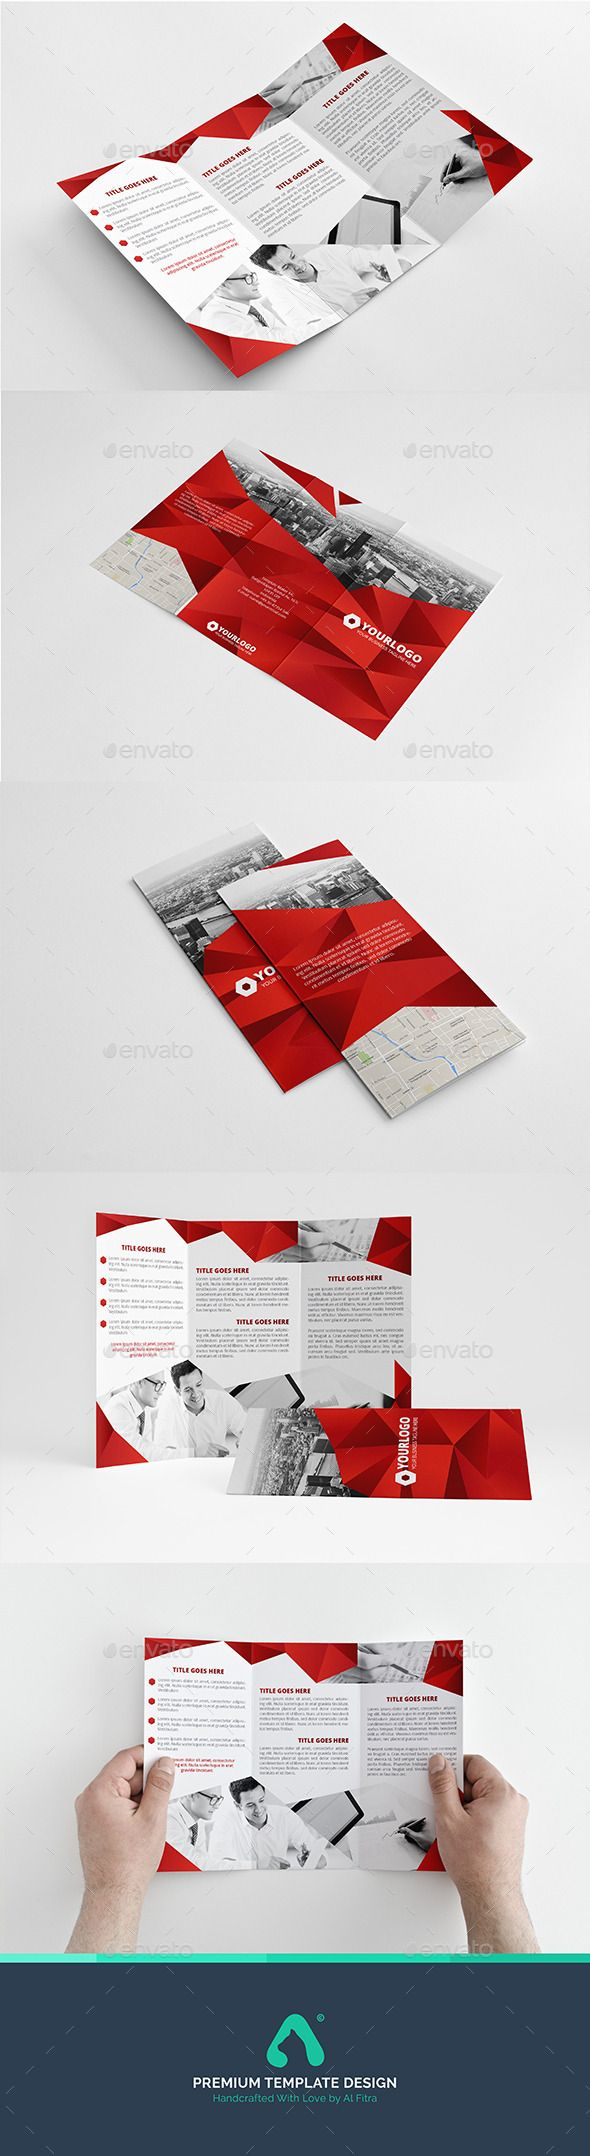 Ruby Marketing Trifold Template #design Download: http://graphicriver.net/item/ruby-marketing-trifold/9862194?ref=ksioks